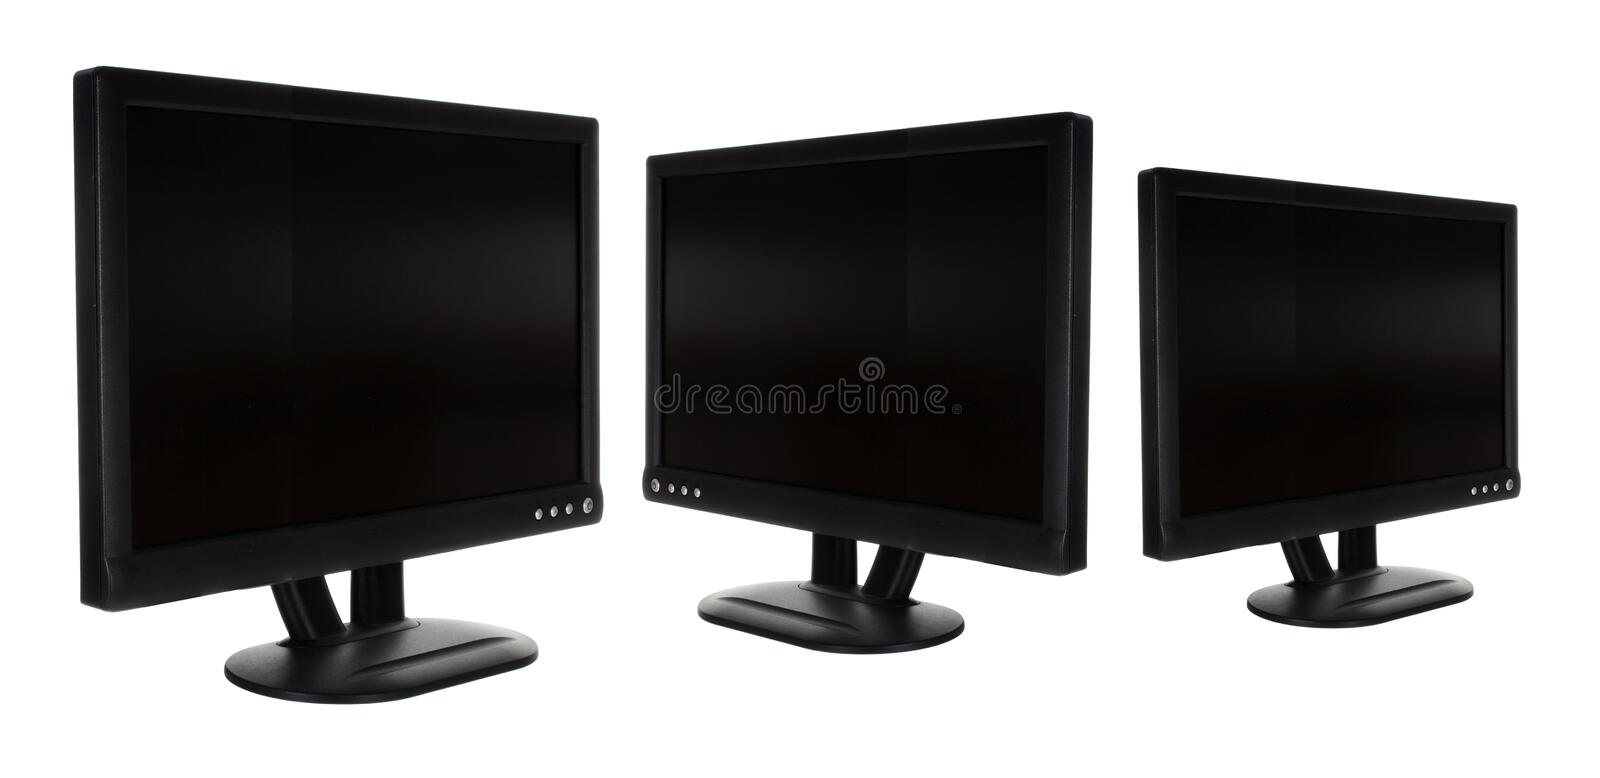 LCD Monitors stock afbeelding